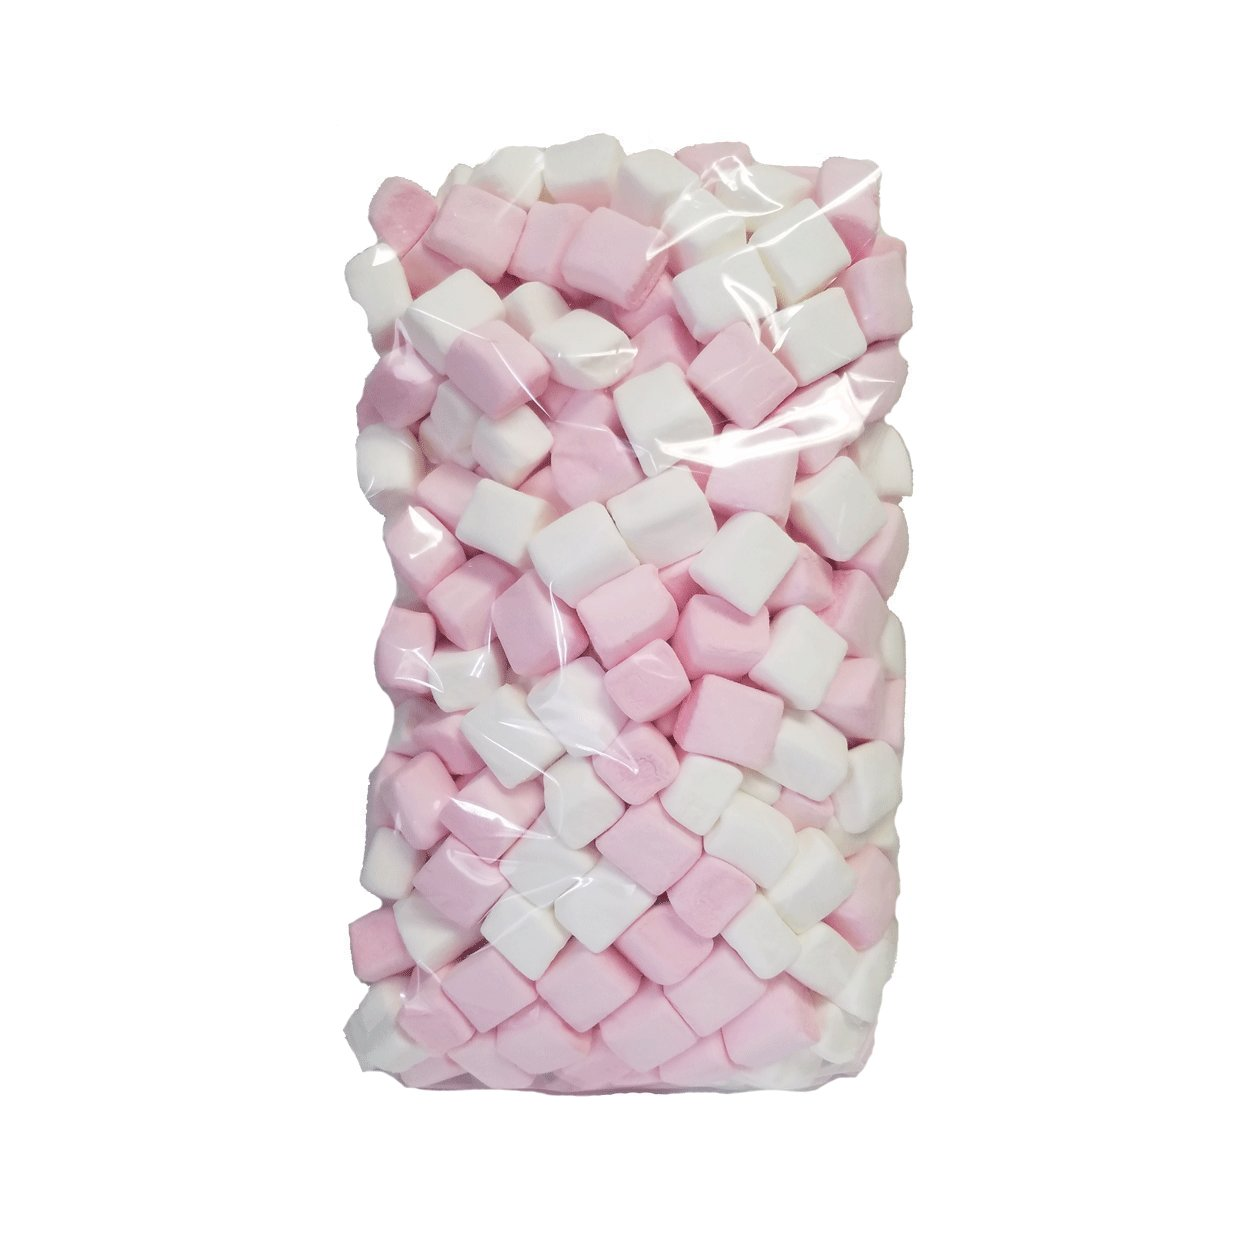 Hoosier Hill Farm Belgian Marshmallow Cubes, Pink and White, 2.2 lbs (1kg)